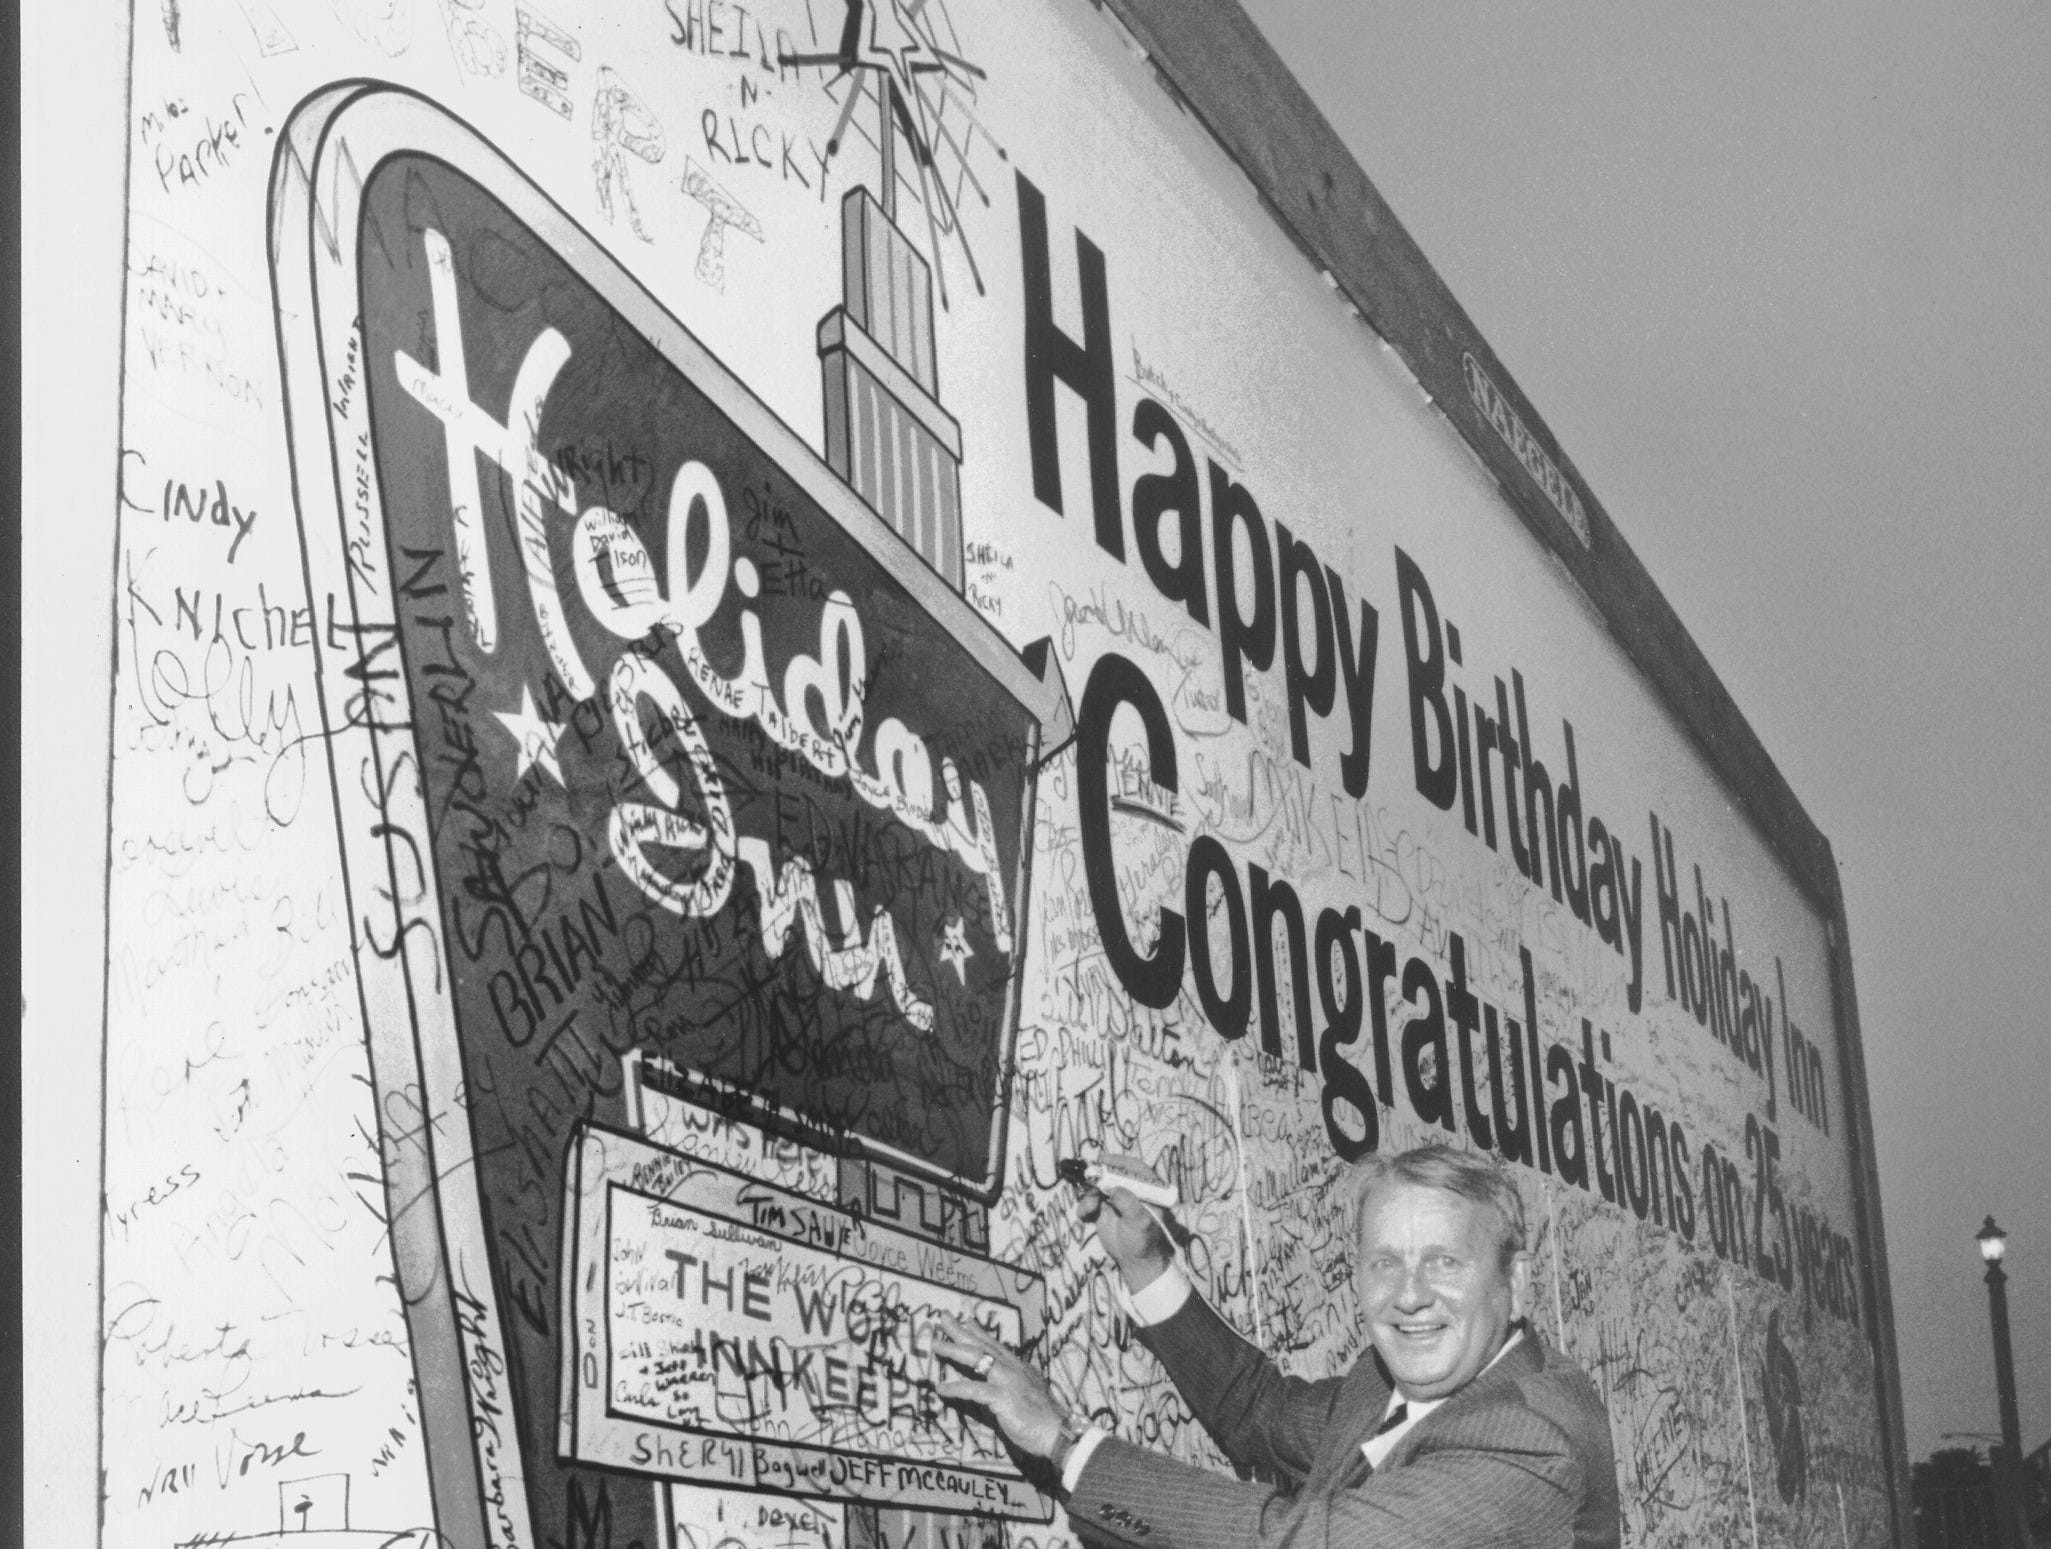 Dave Darnell/The Commercial Appeal Founder and chairman of the board Kemmons Wilson adds his name to a 12-by-25-foot card wishing Holiday Inns a happy 25th birthday on Sept. 8, 1977. More than 8,000 employees and their families' special guests were invited to a party at Libertyland to celebrate the event.